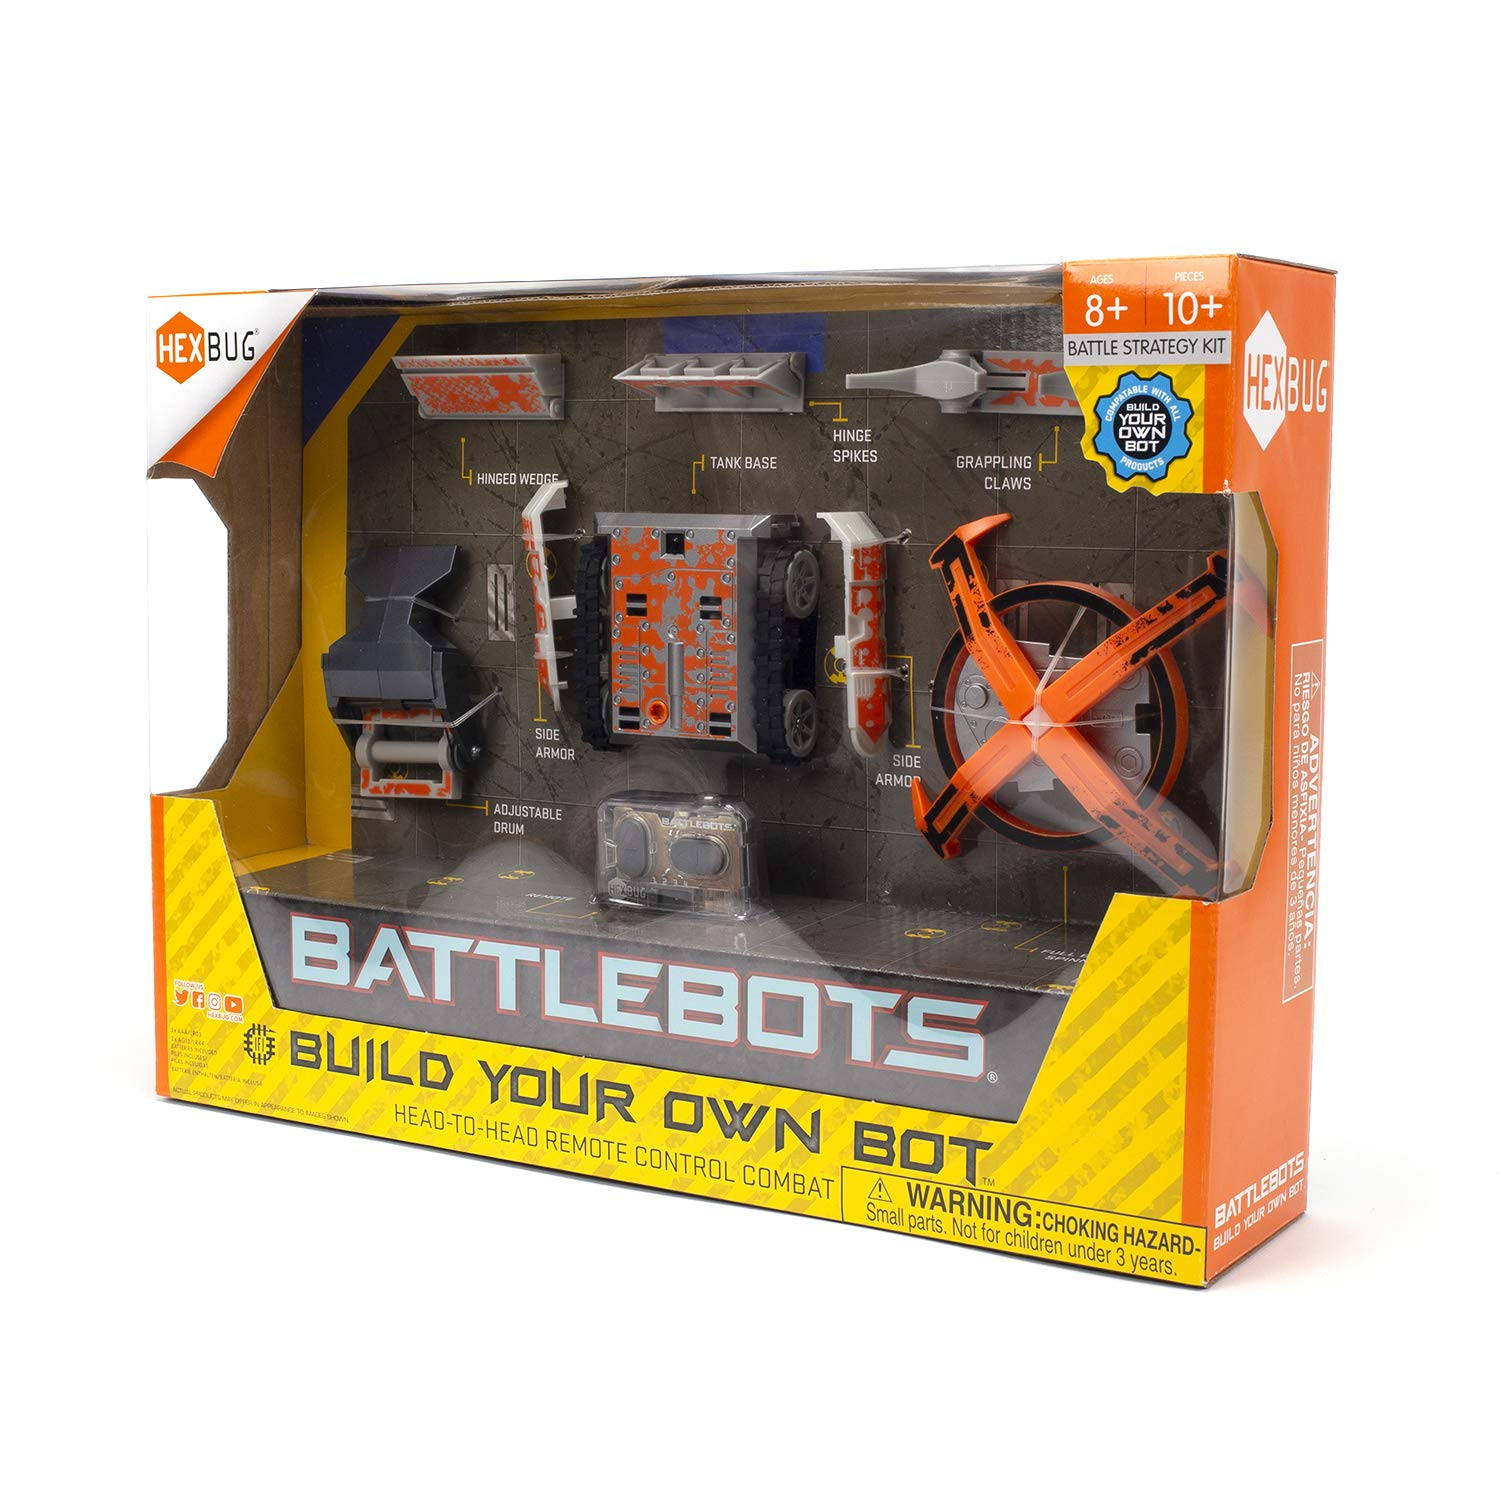 HEXBUG BattleBots Build Your Own Bot Tank Drive, Toys for Kids, Fun Battle Bot Hex Bugs by HEXBUG (Image #3)